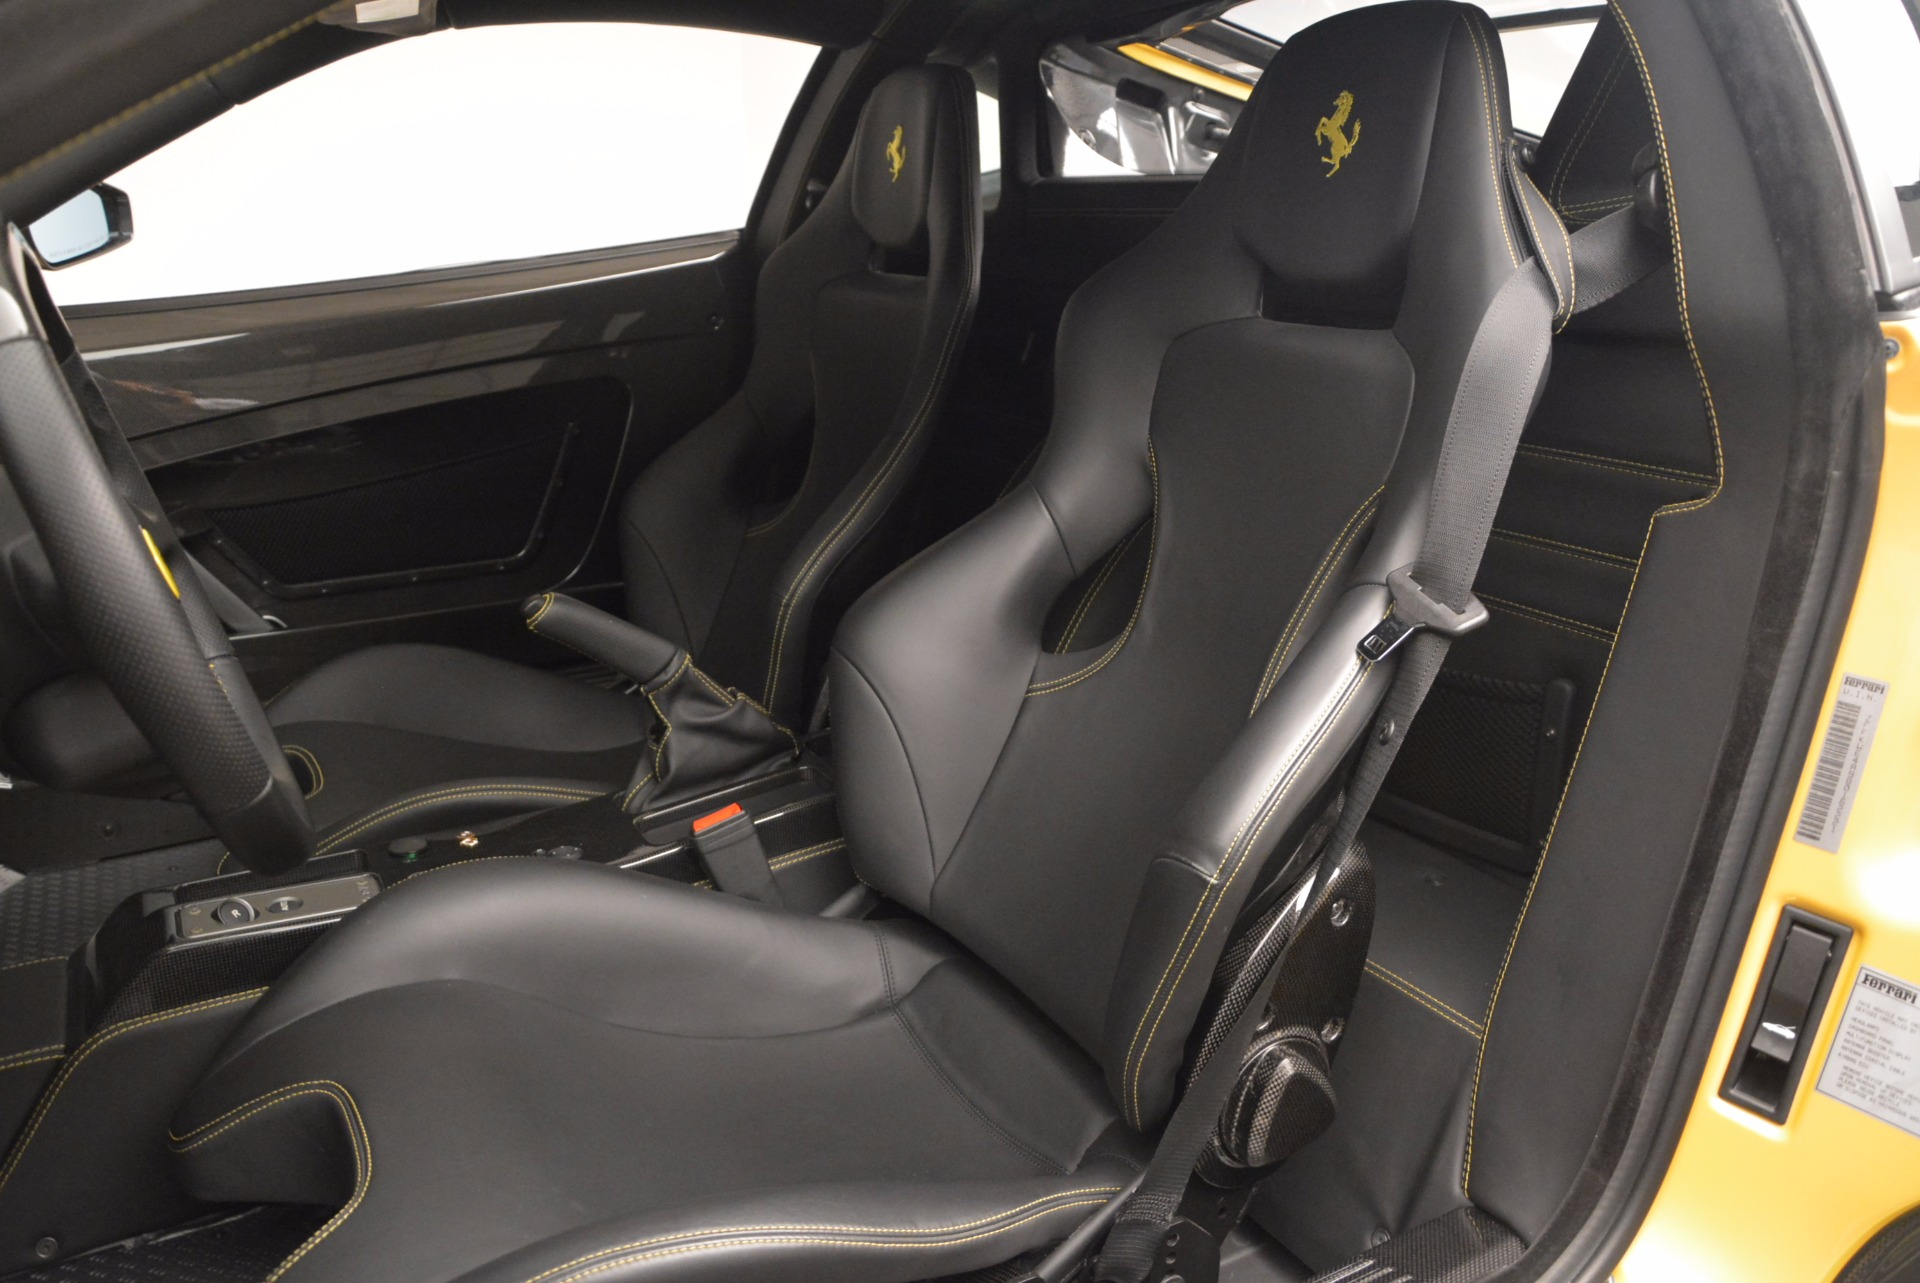 Used 2008 Ferrari F430 Scuderia For Sale In Westport, CT 1397_p15